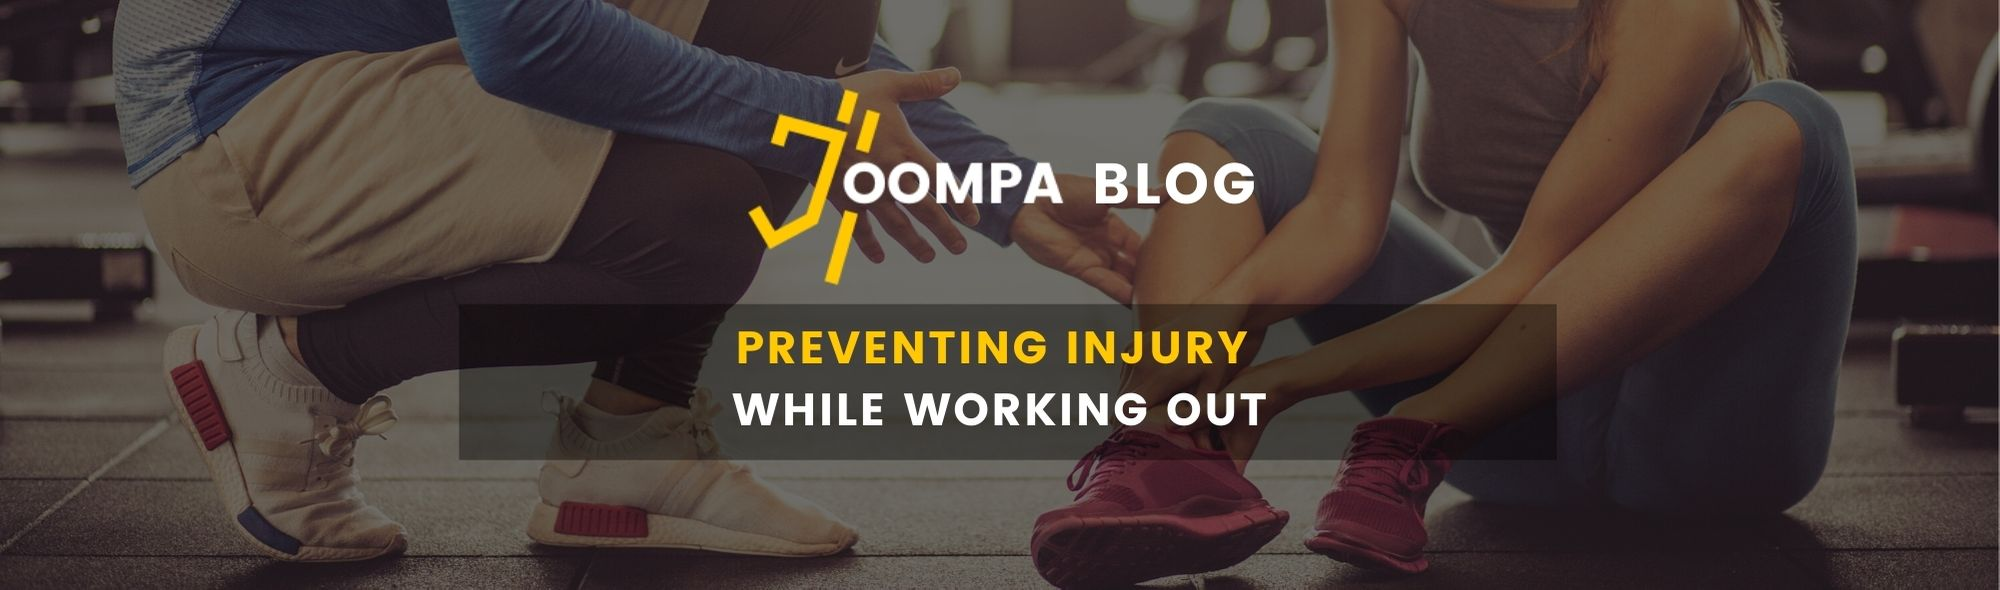 Preventing Injury While Working Out